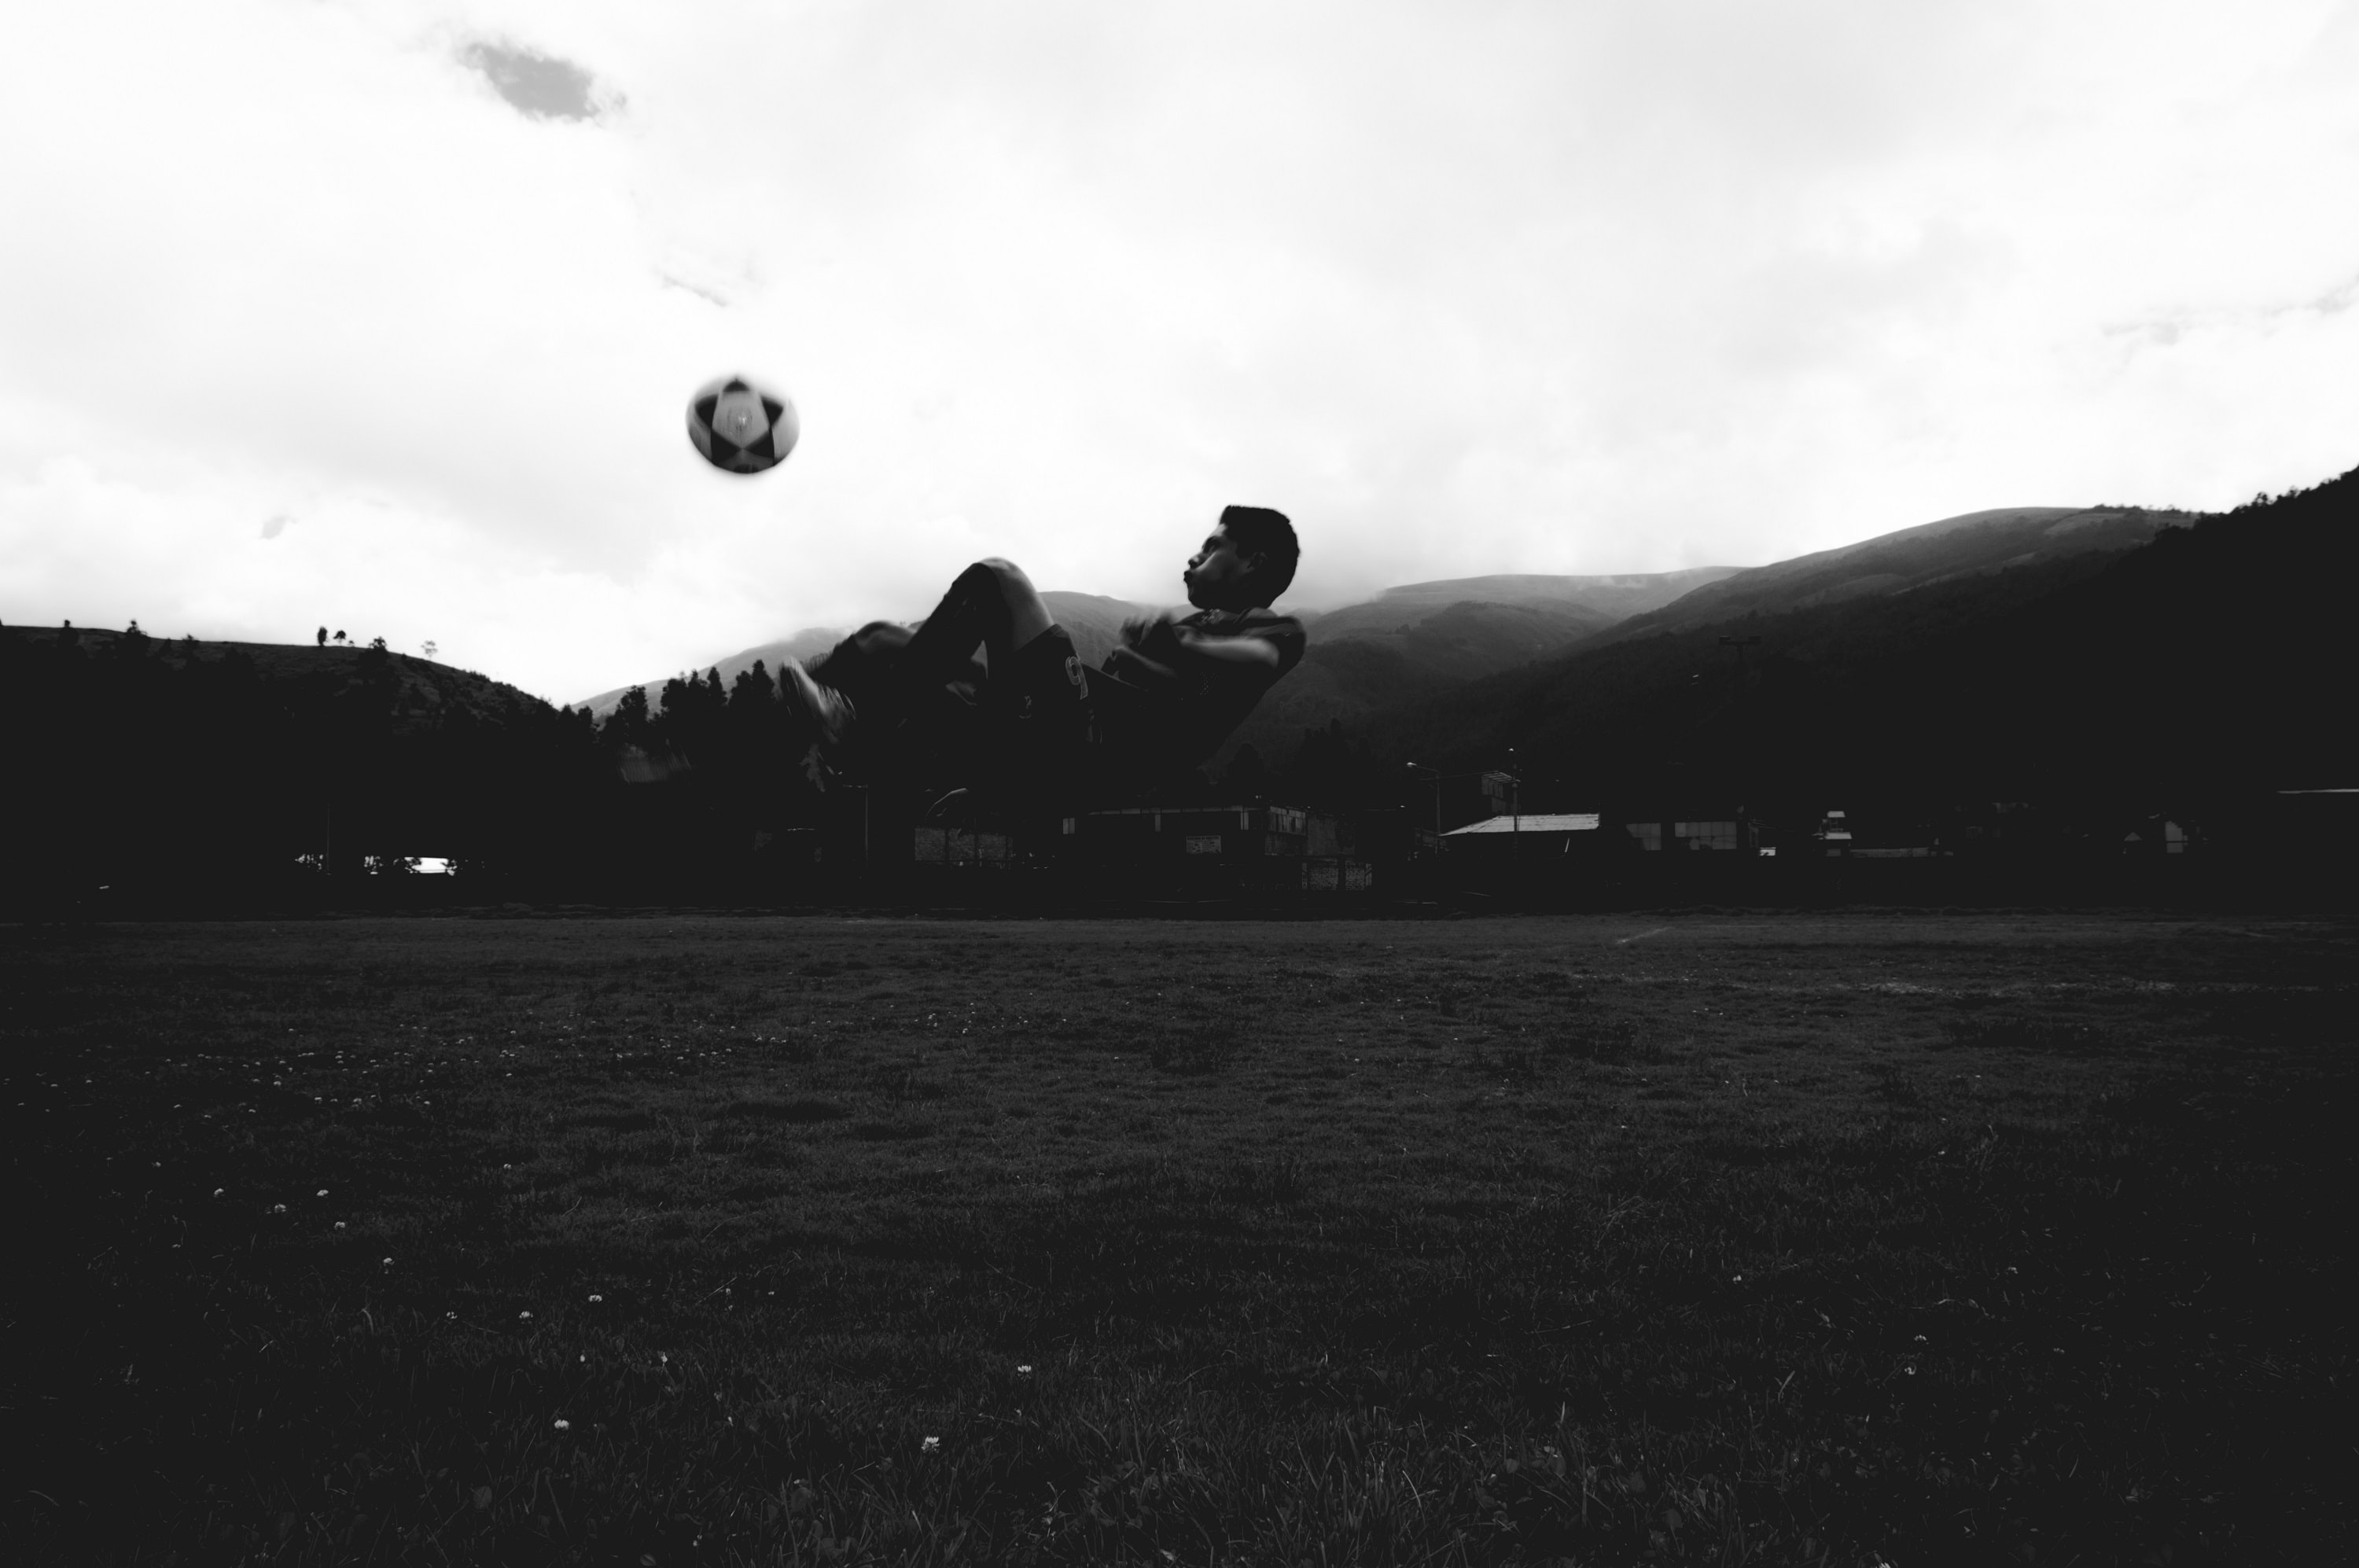 grayscale photo of man playing soccer